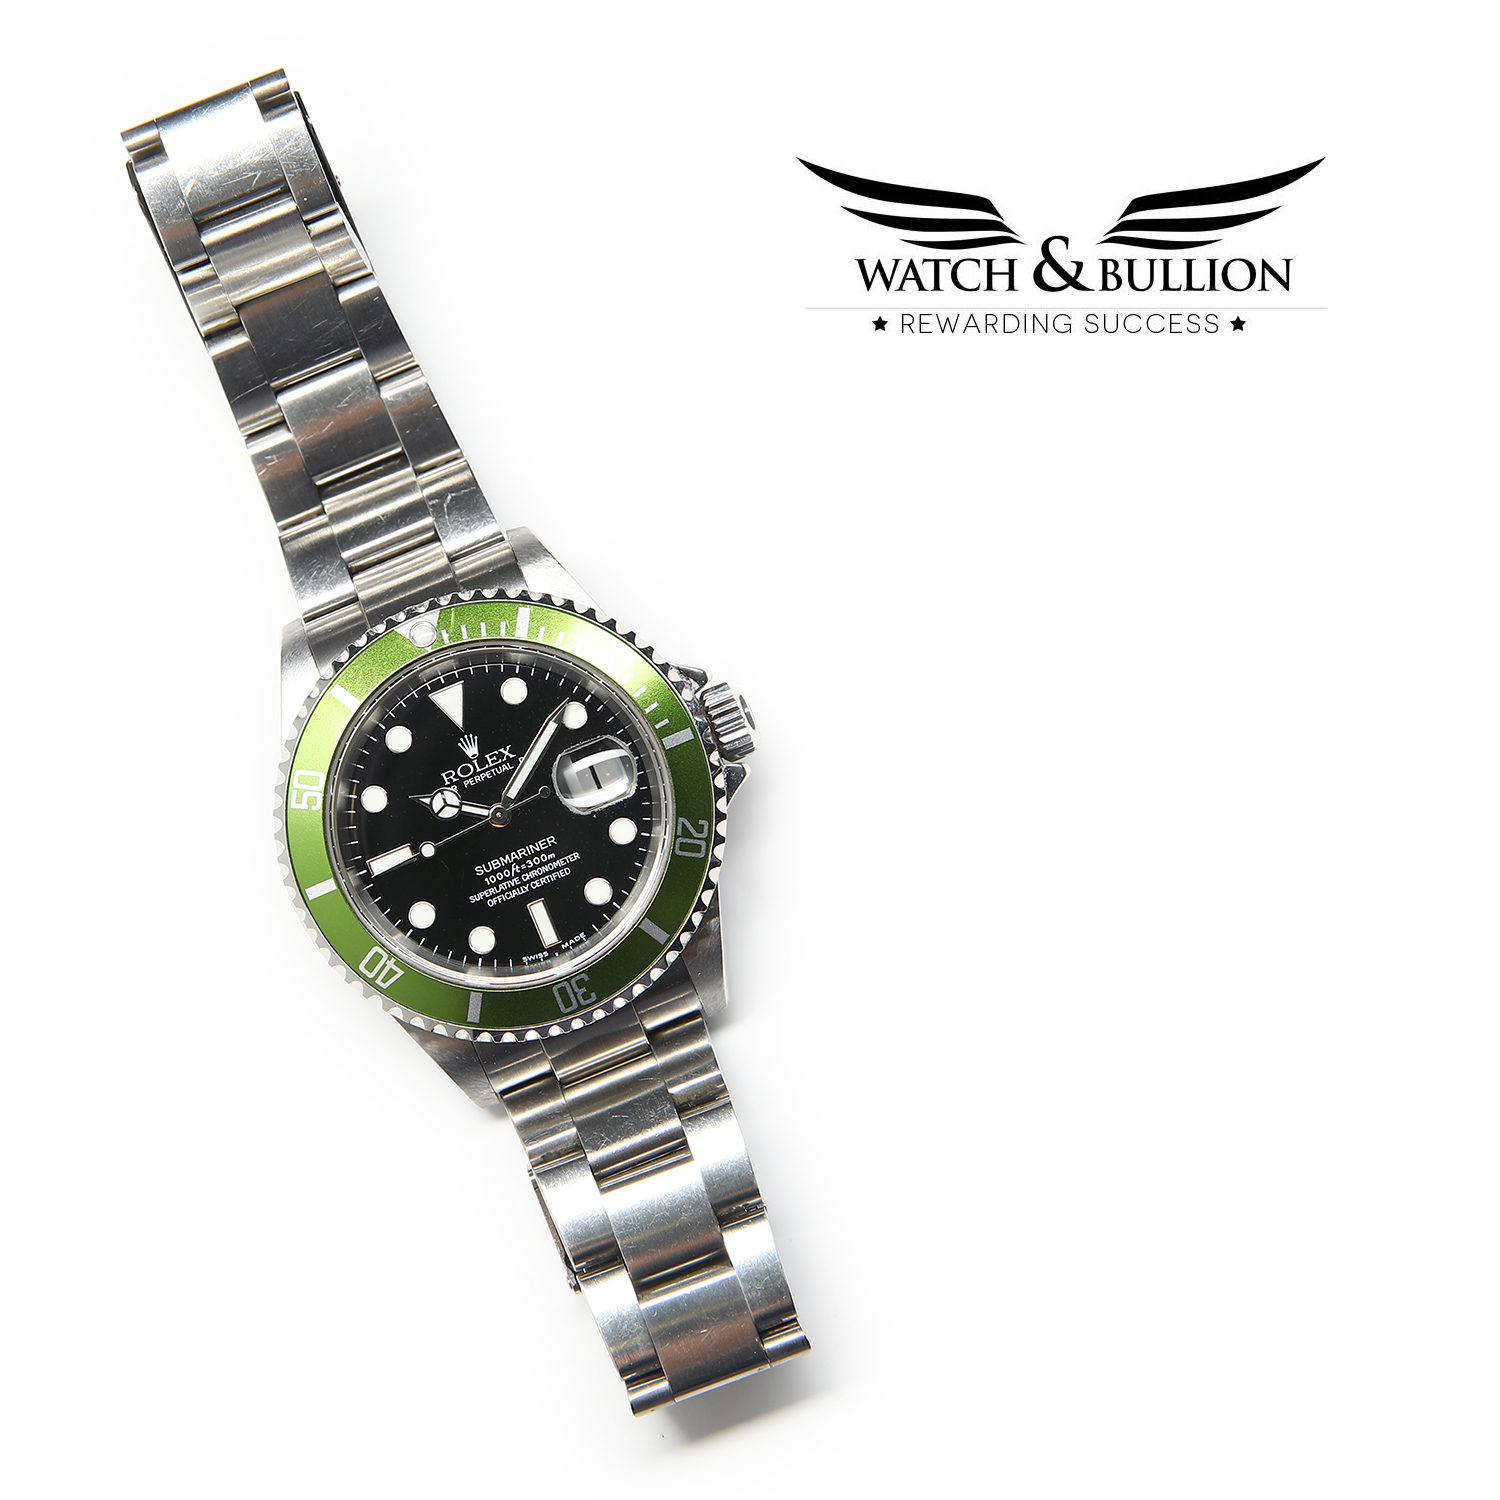 Rolex Submariner Kermit, 50th Anniversary 16610LV T, Flat four, F Series